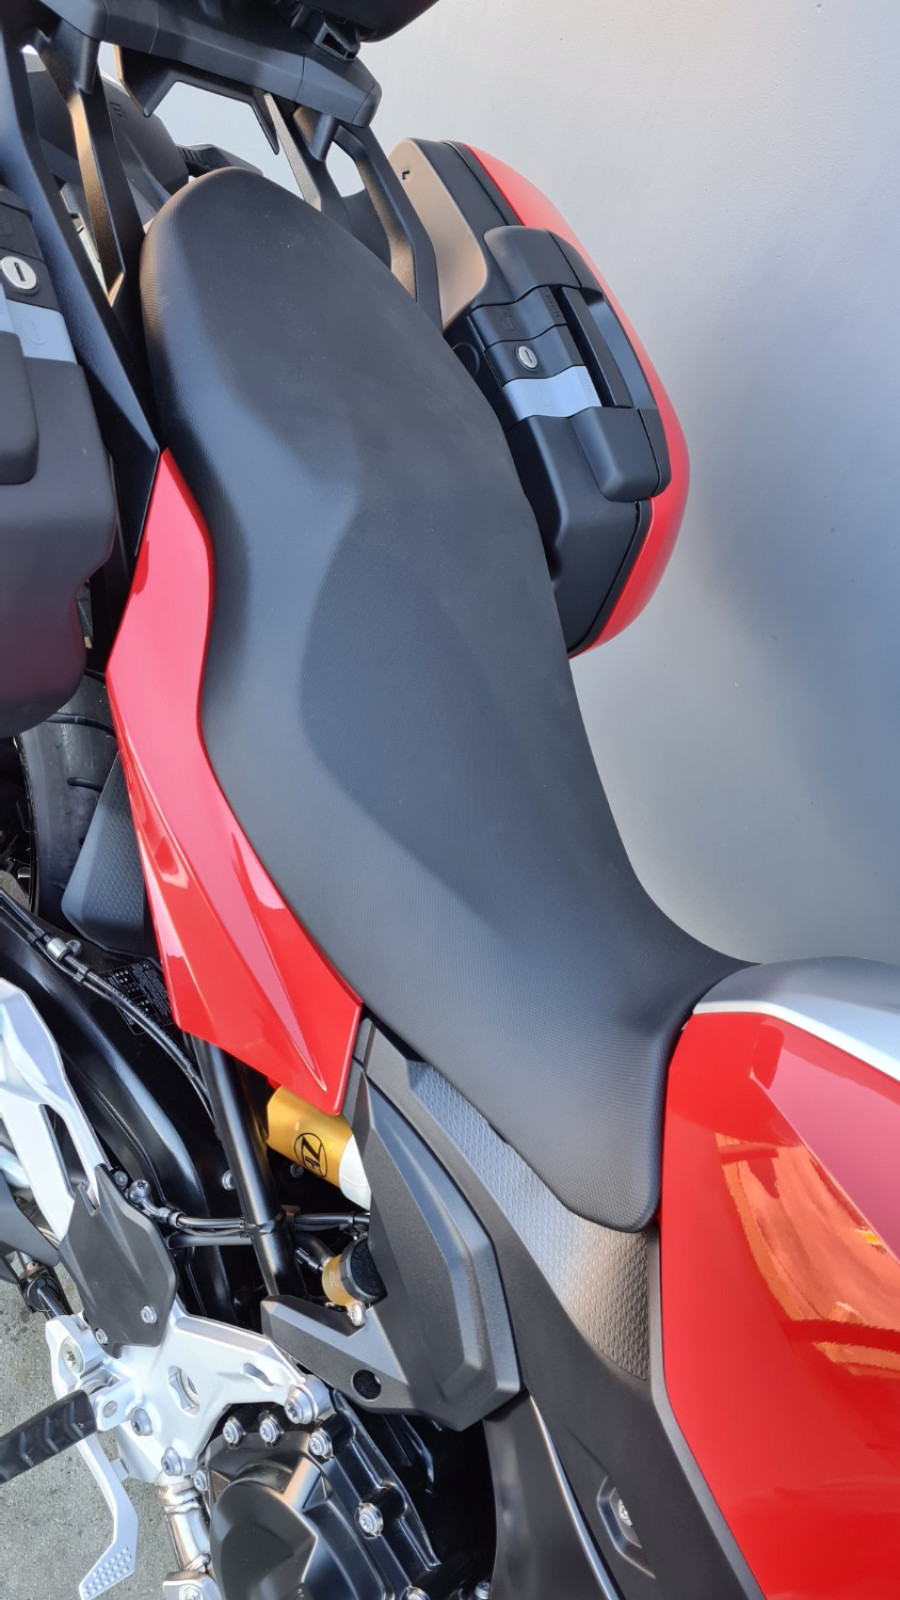 2021 BMW F 900 XR Tour F F 900 XR Tour Motorcycle Image 16